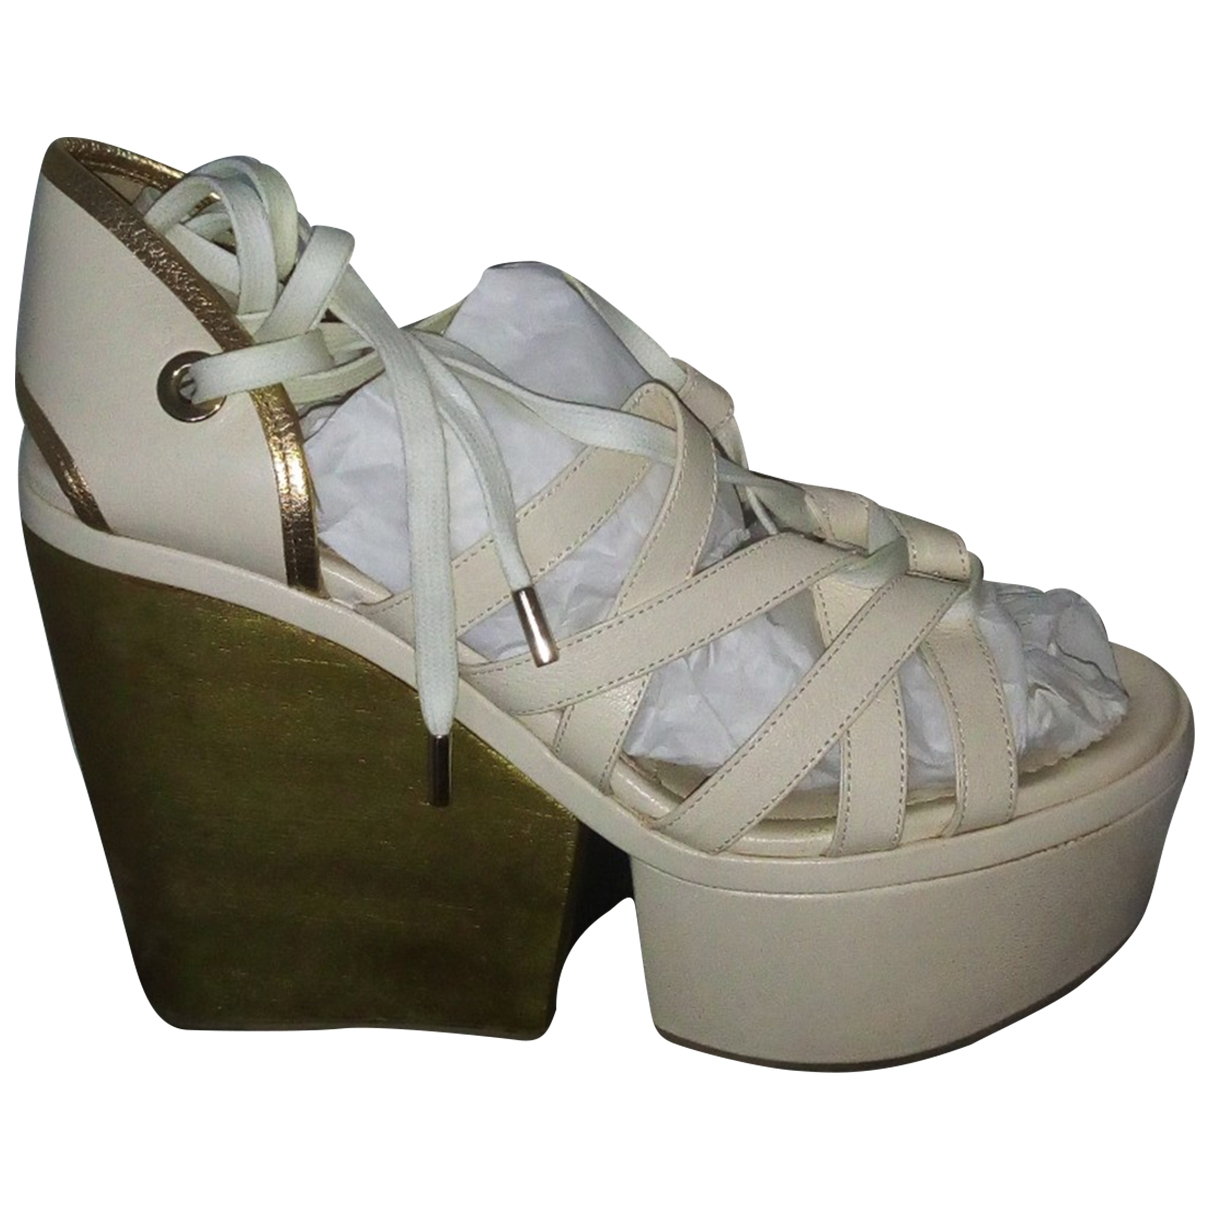 D&g \N White Leather Sandals for Women 37 EU